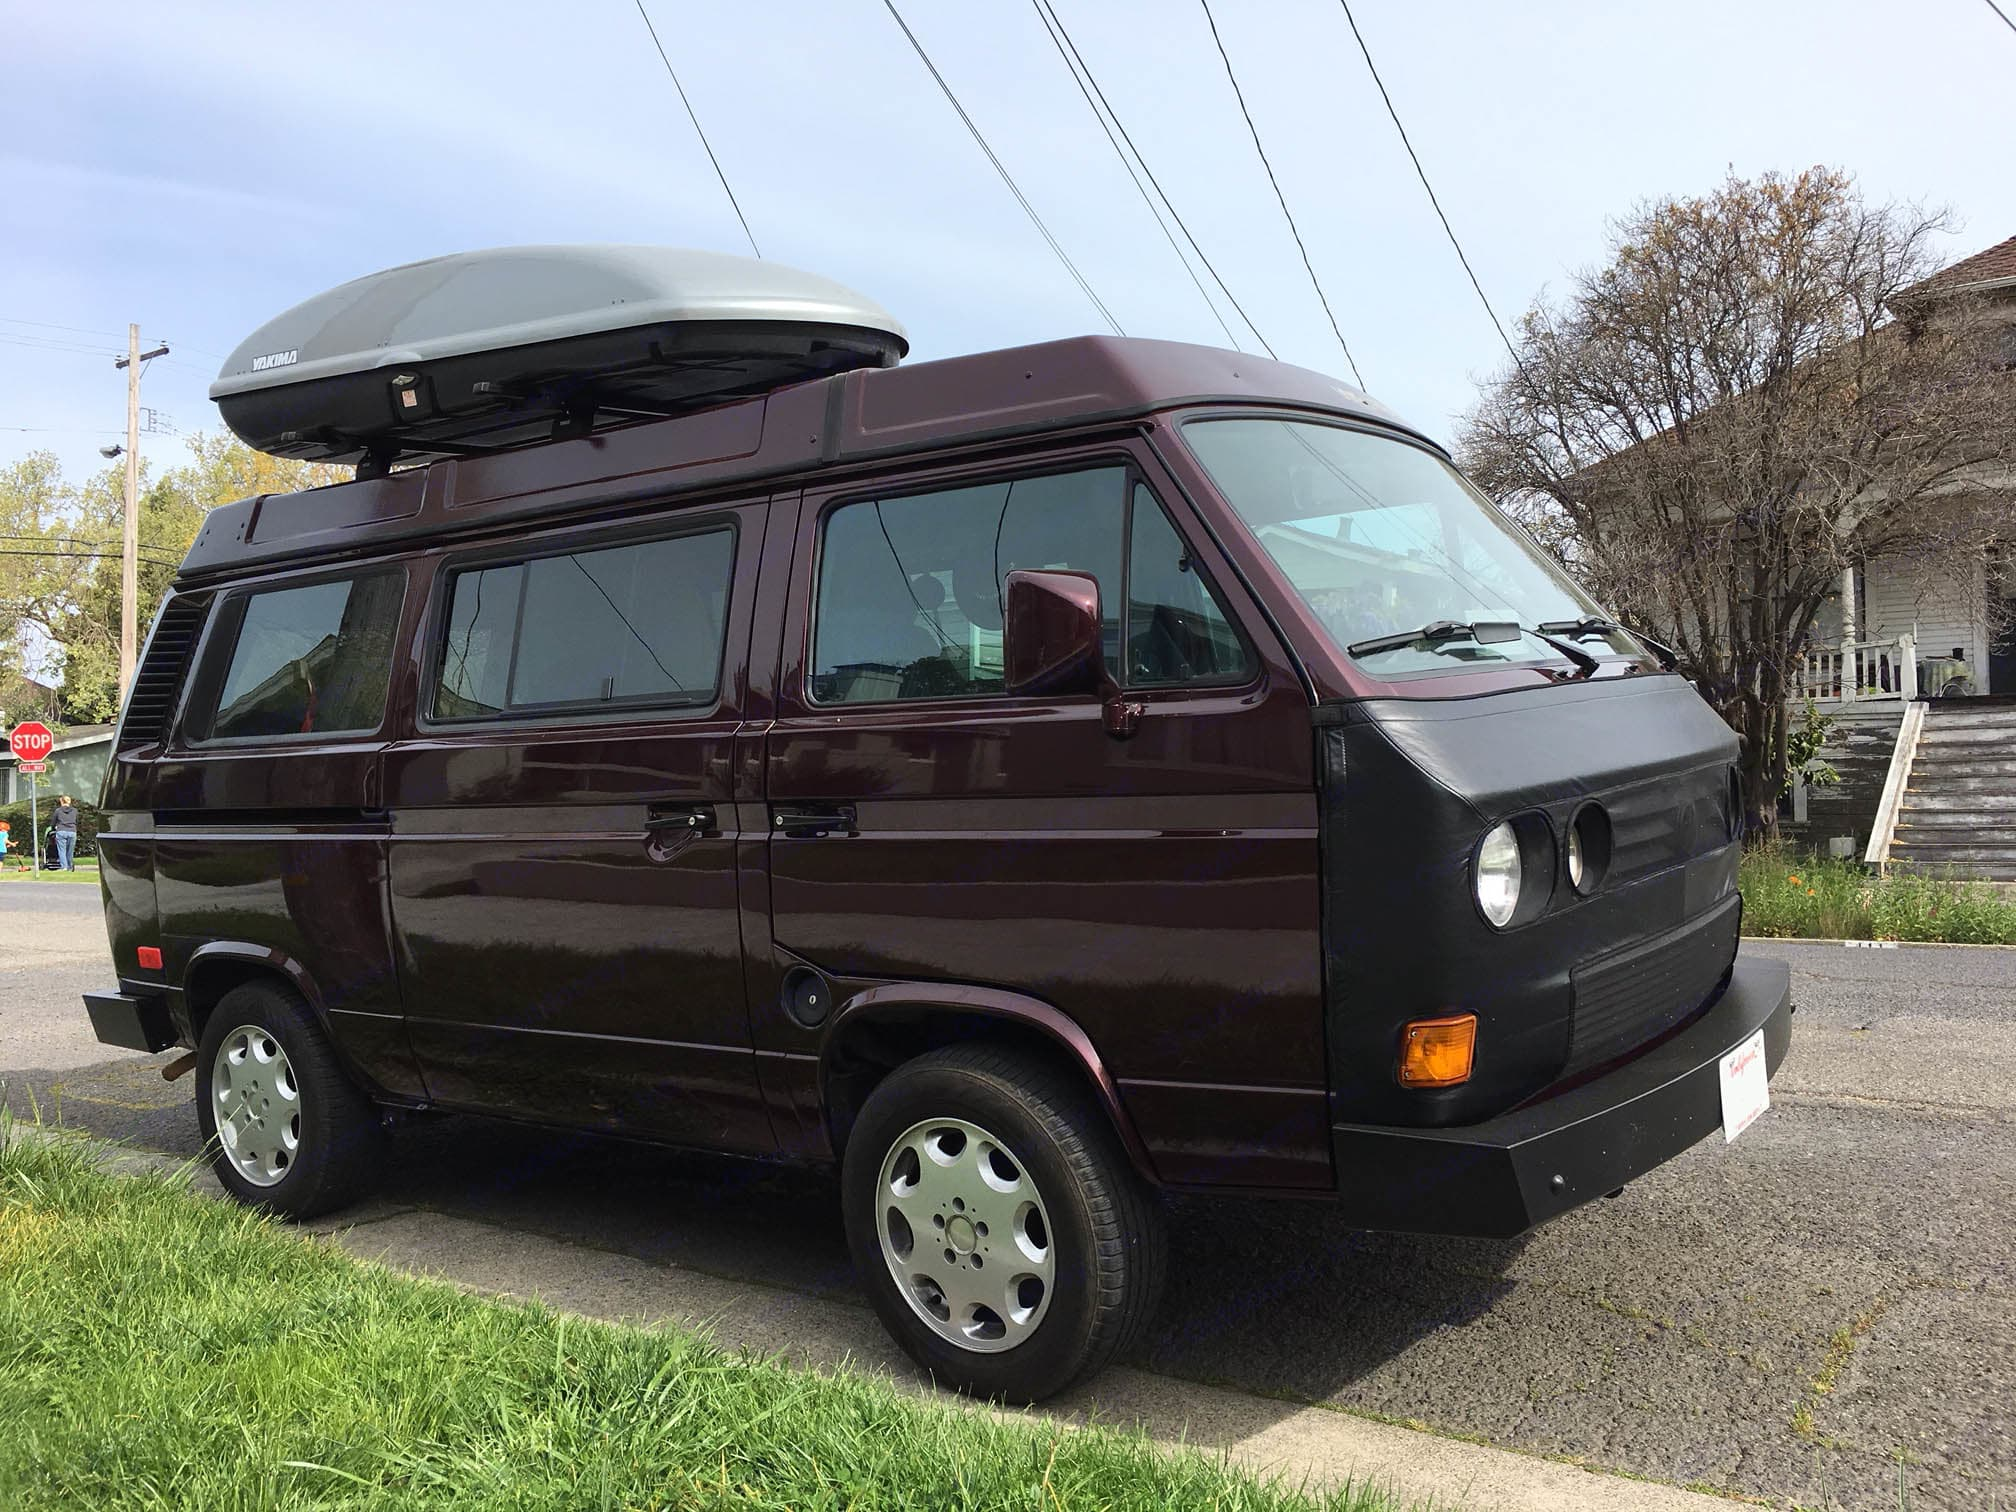 The Beautiful Westy. Top Cargo Carrier has 18 Cubic feet of additional storage.. Volkswagen Westfalia 1990